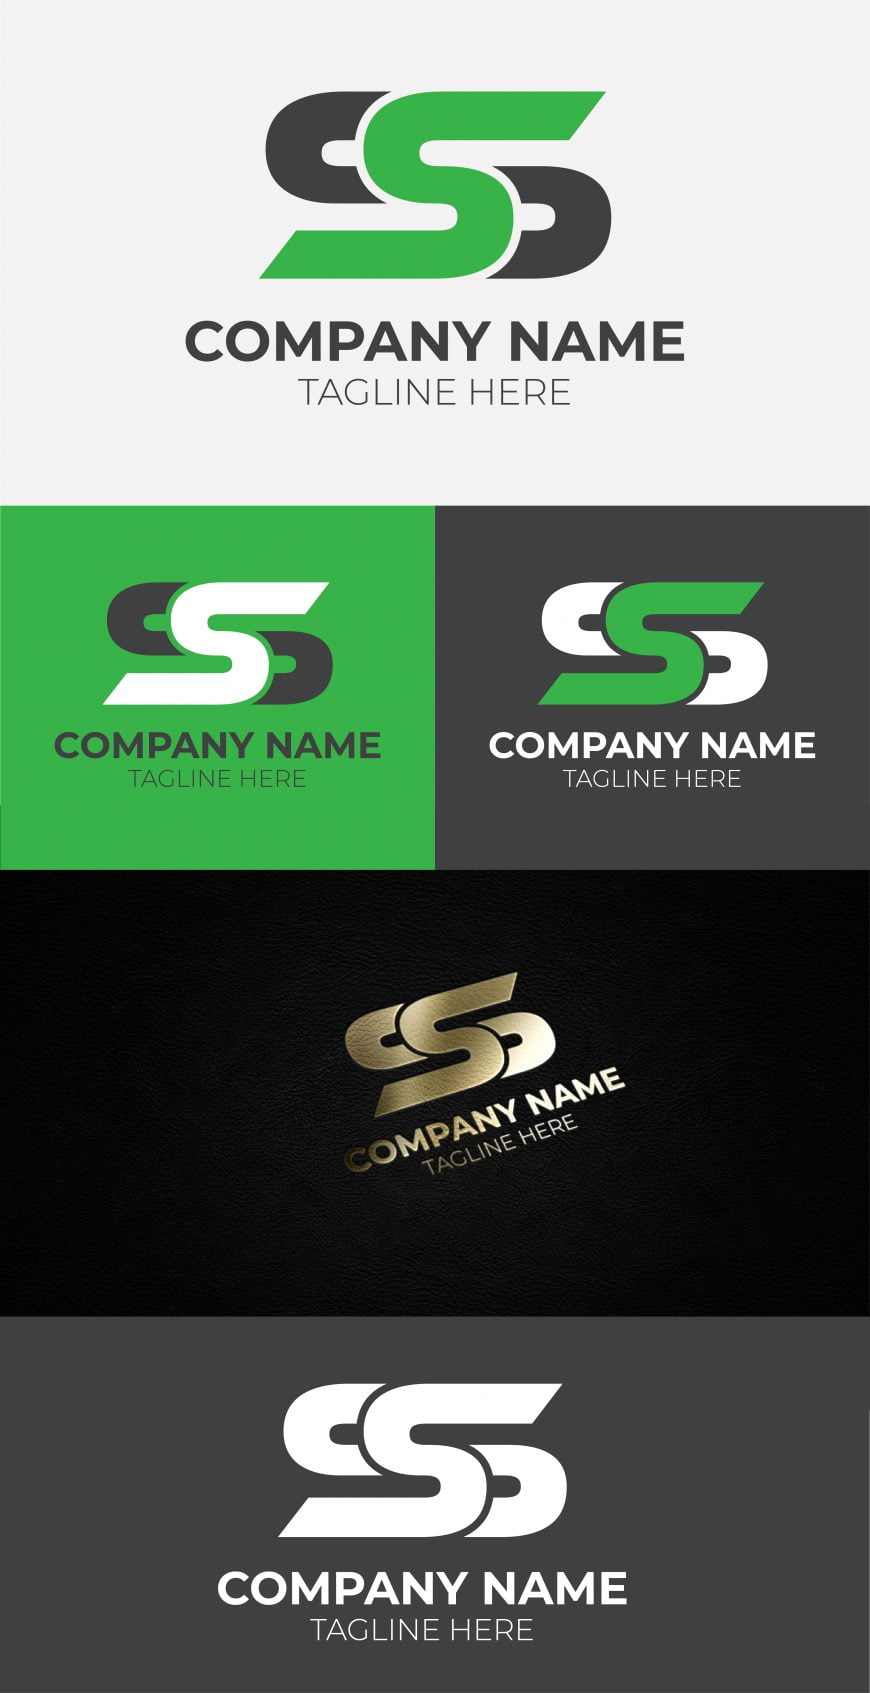 SS-LETTER-LOGO-FREE-VECTOR-scaled